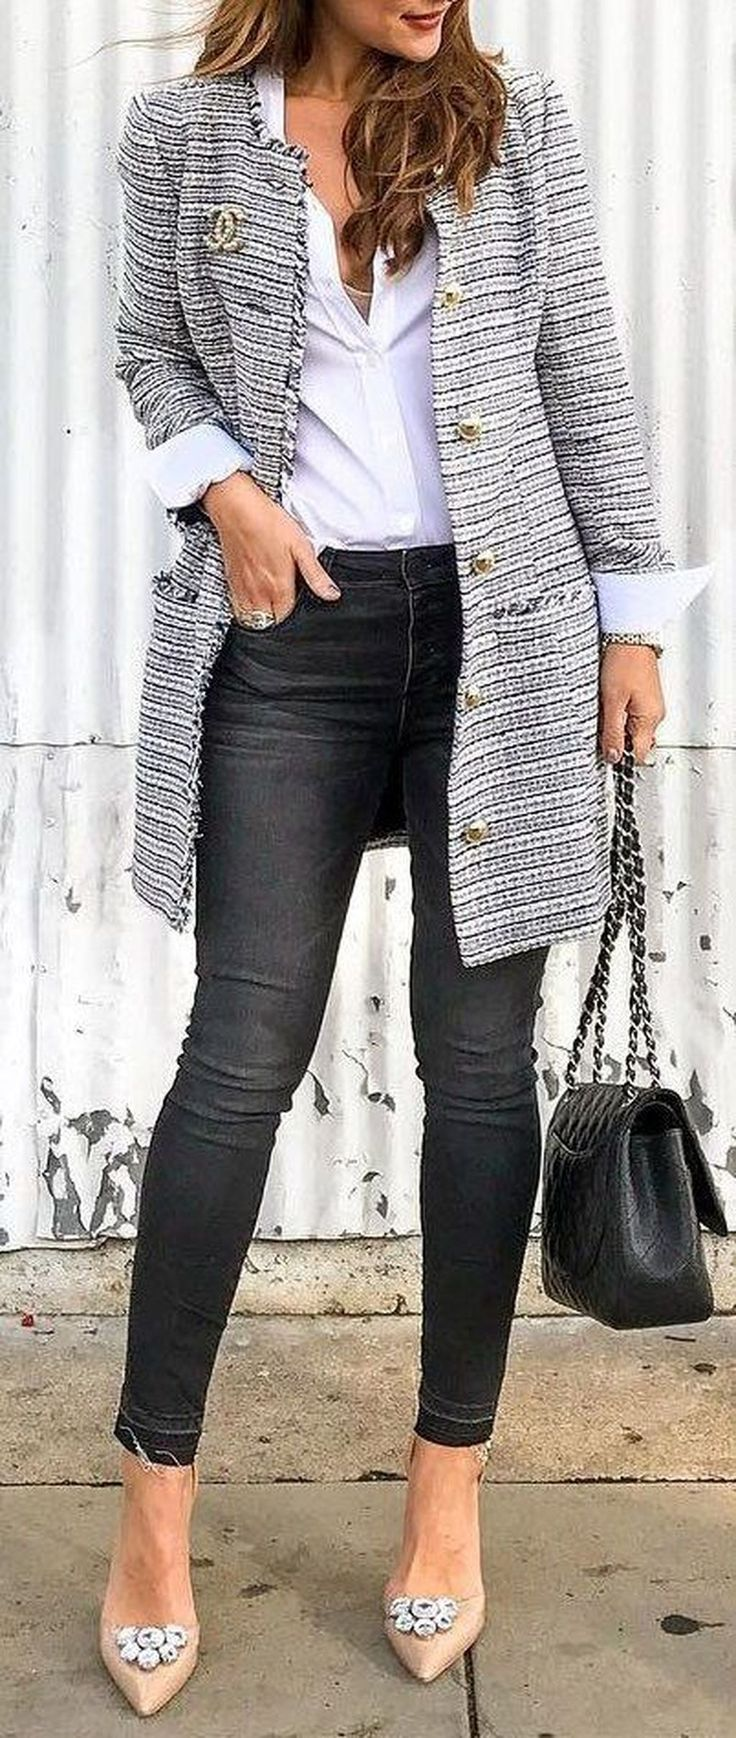 Awesome 35 Stunning Chic Winter Outfits Ideas to Look Casual. More at https://wear4trend.com/2017/12/30/35-stunning-chic-winter-outfits-ideas-look-casual/